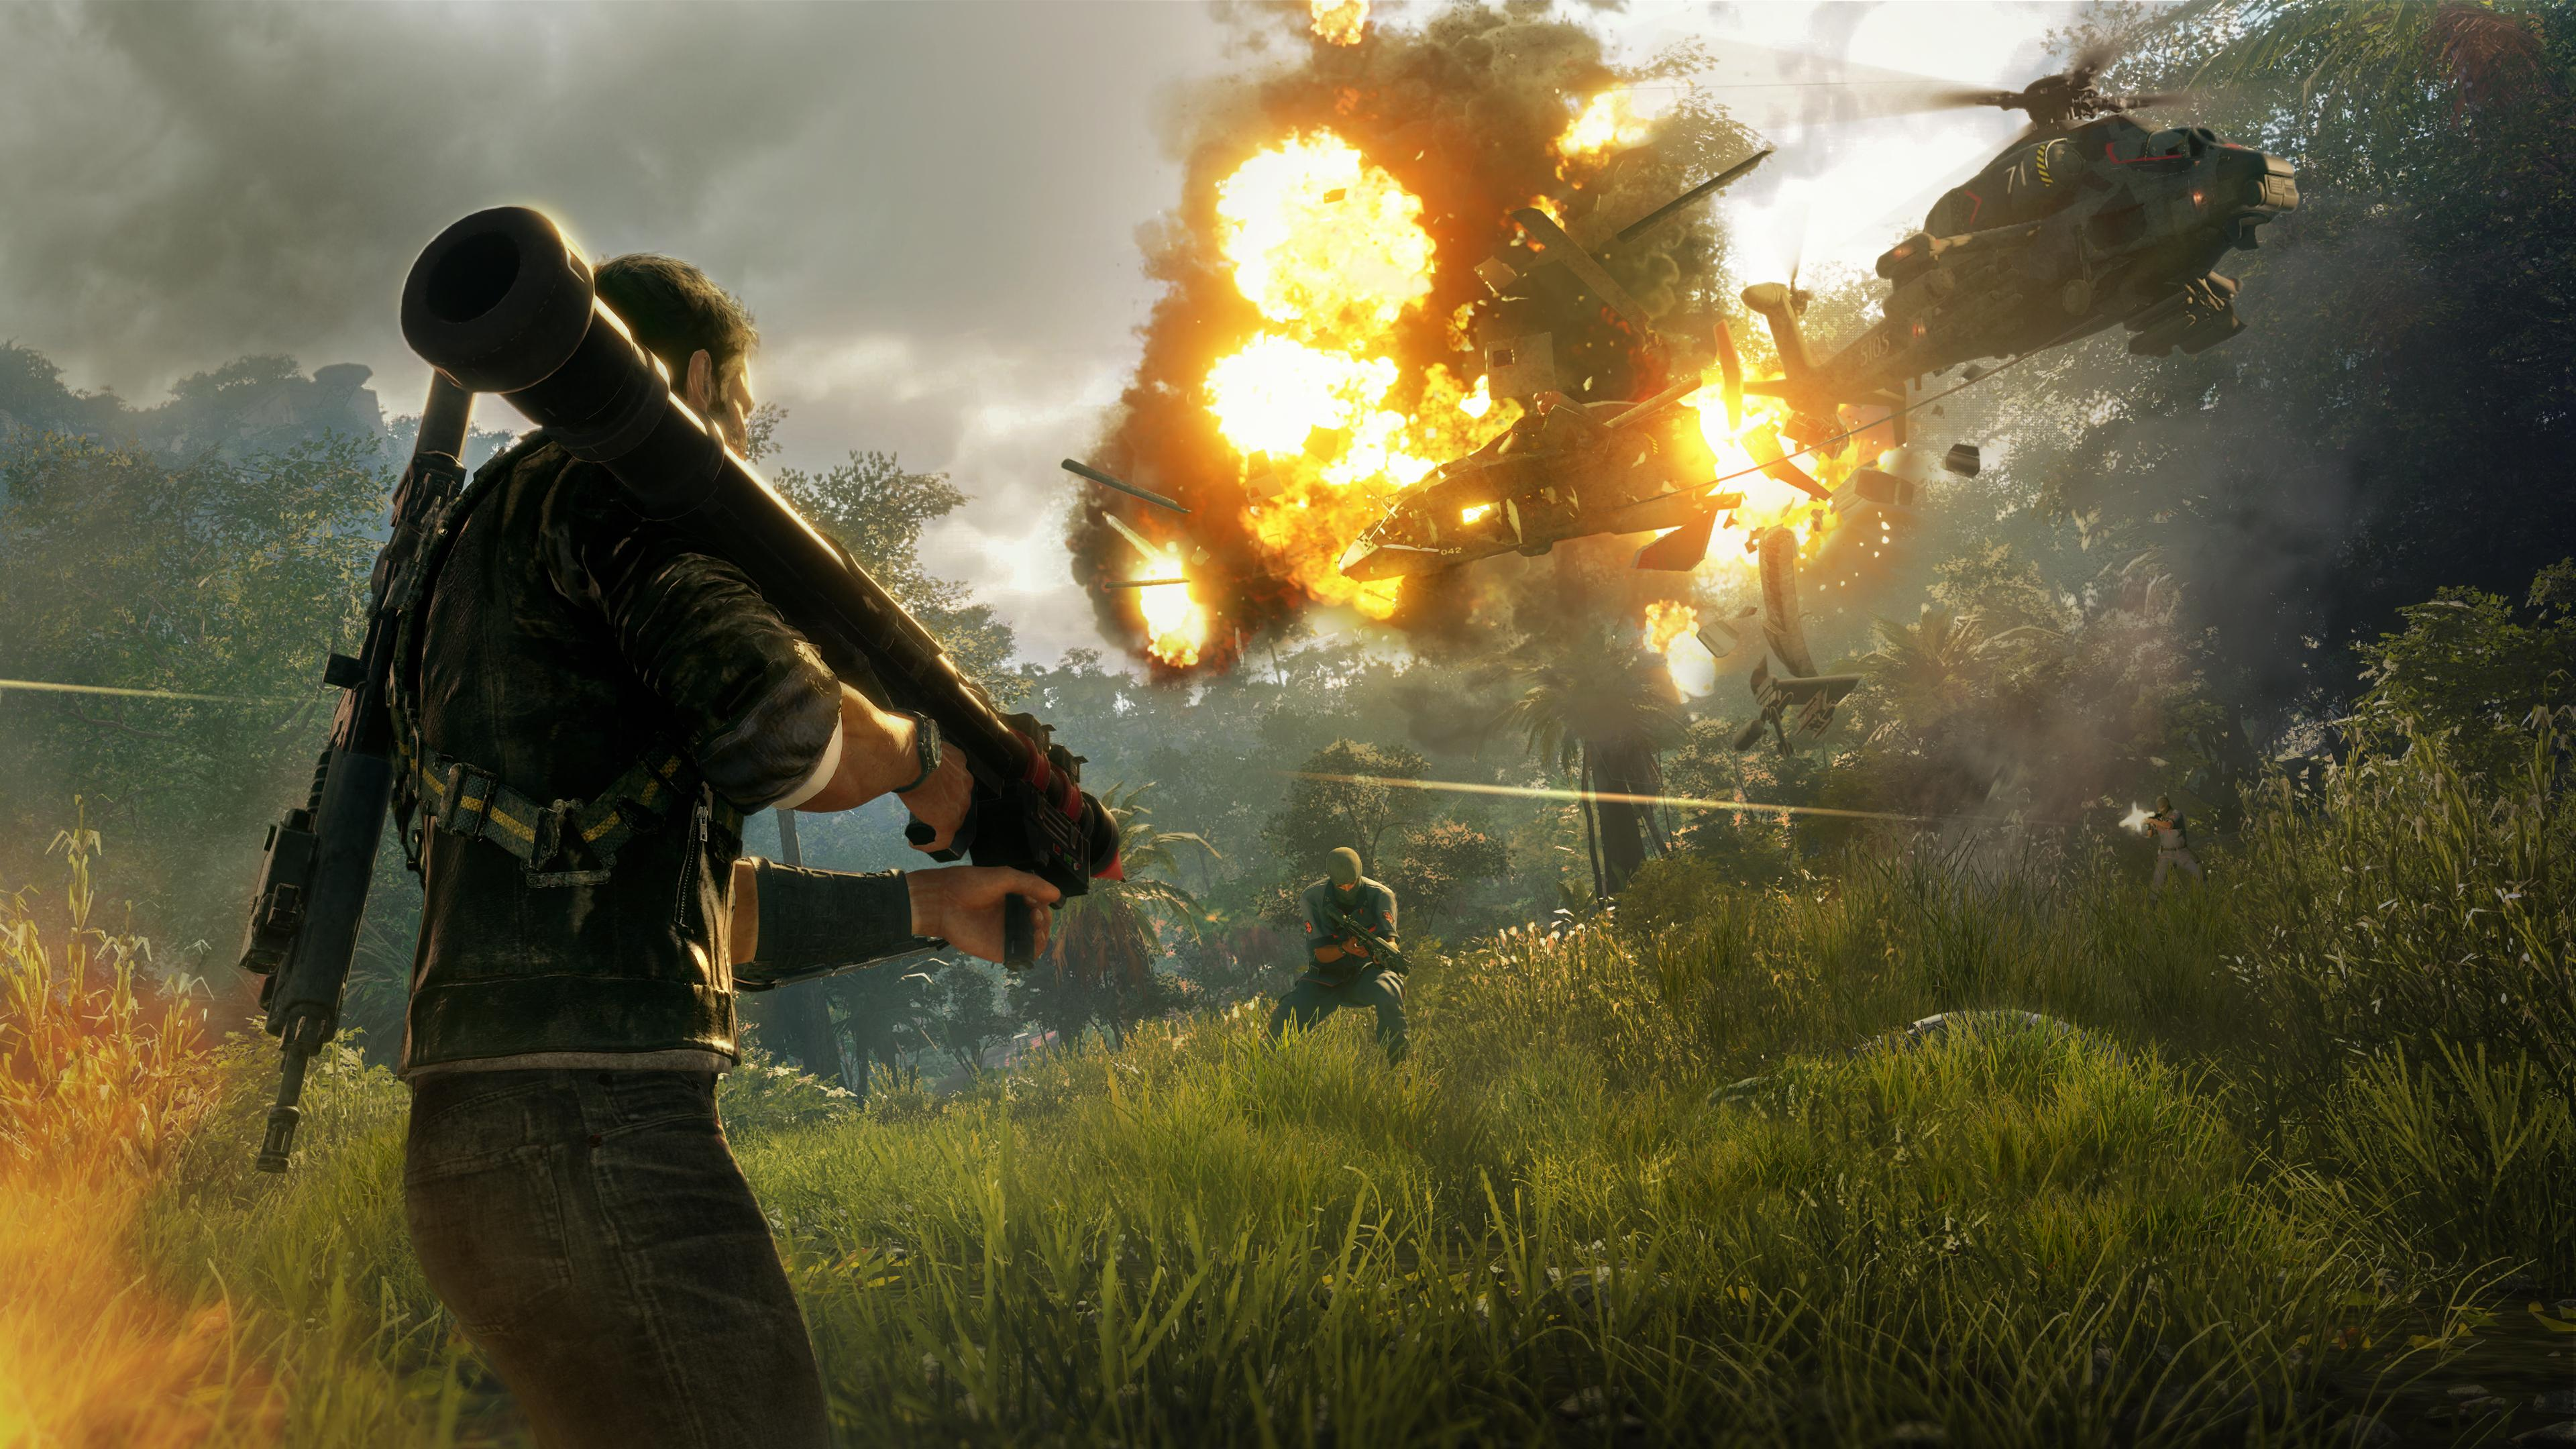 Just Cause 4 promises more over-the-top action